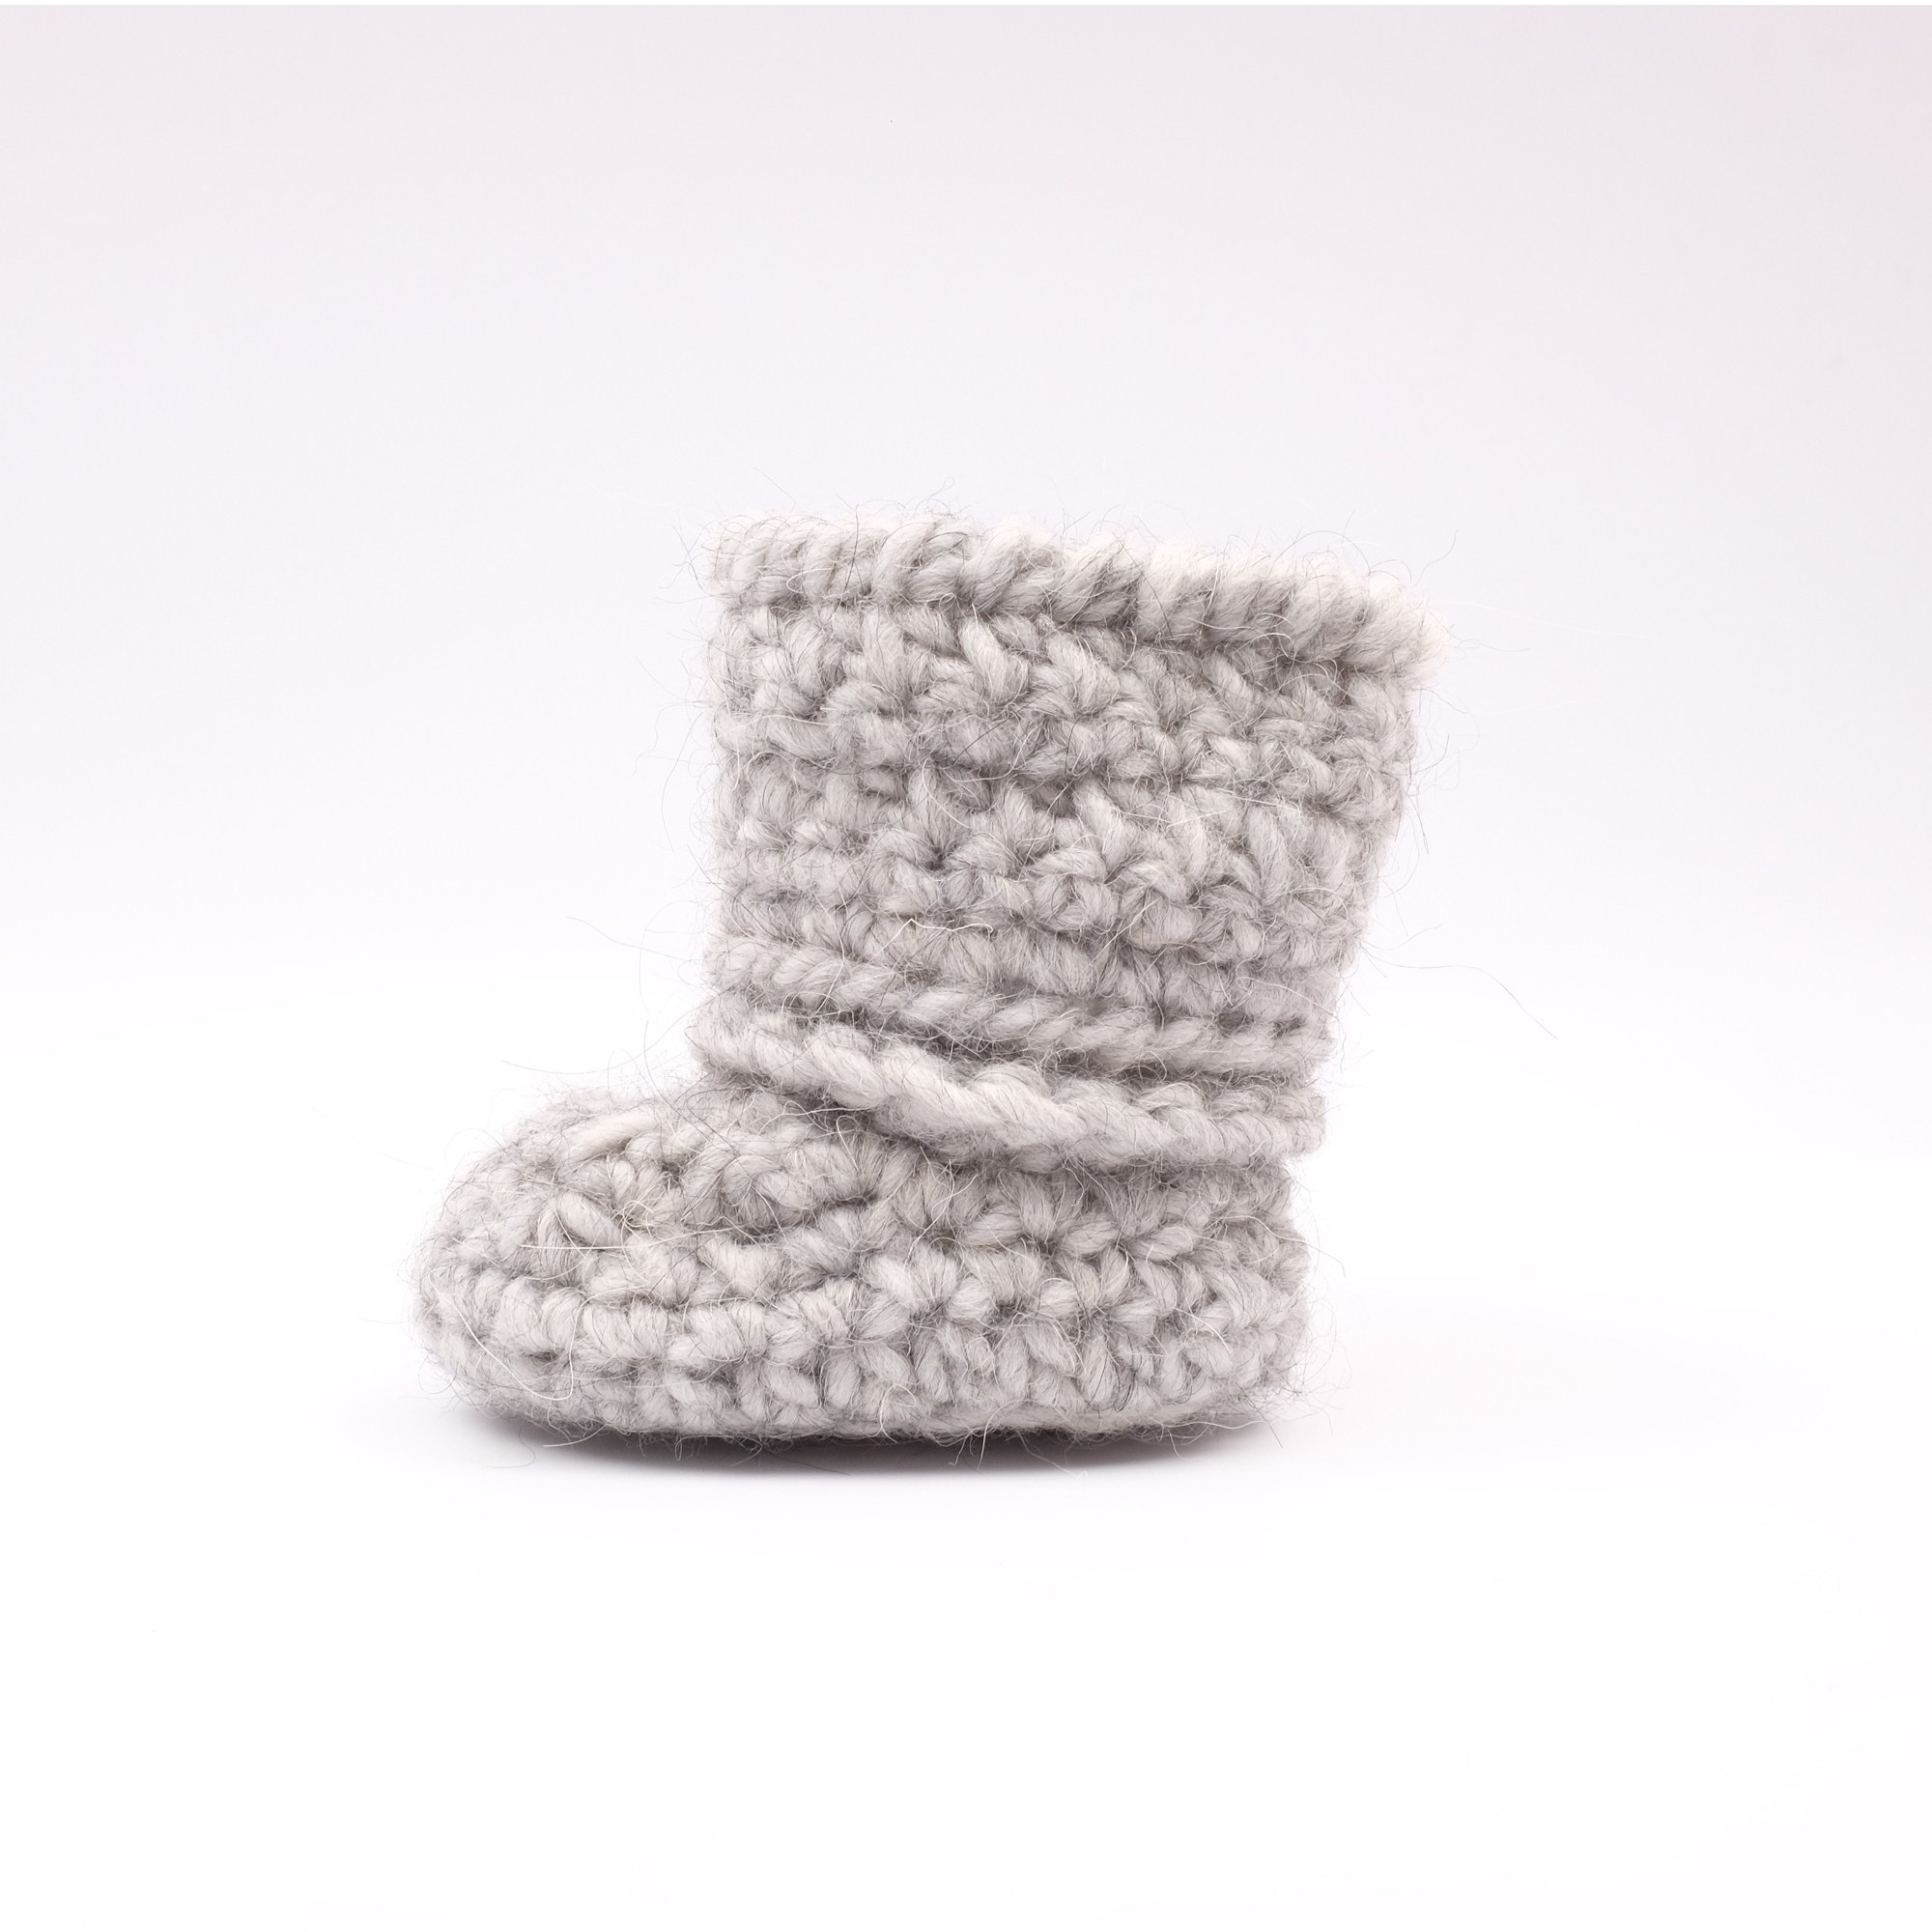 Célestine boot for baby - grey color - left side